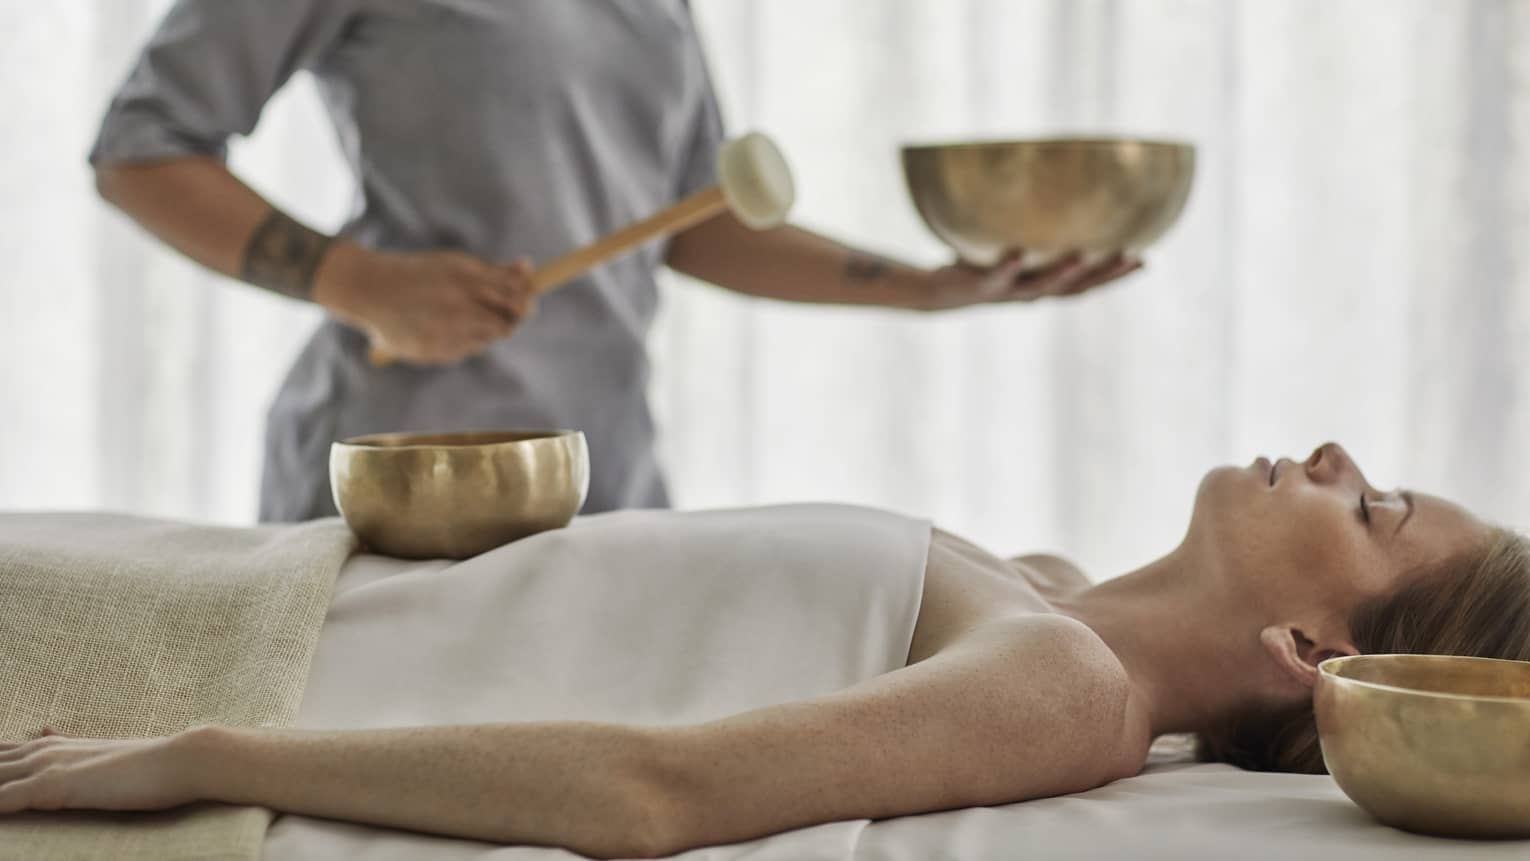 Woman with eyes closed lies on massage table as staff performs a treatment